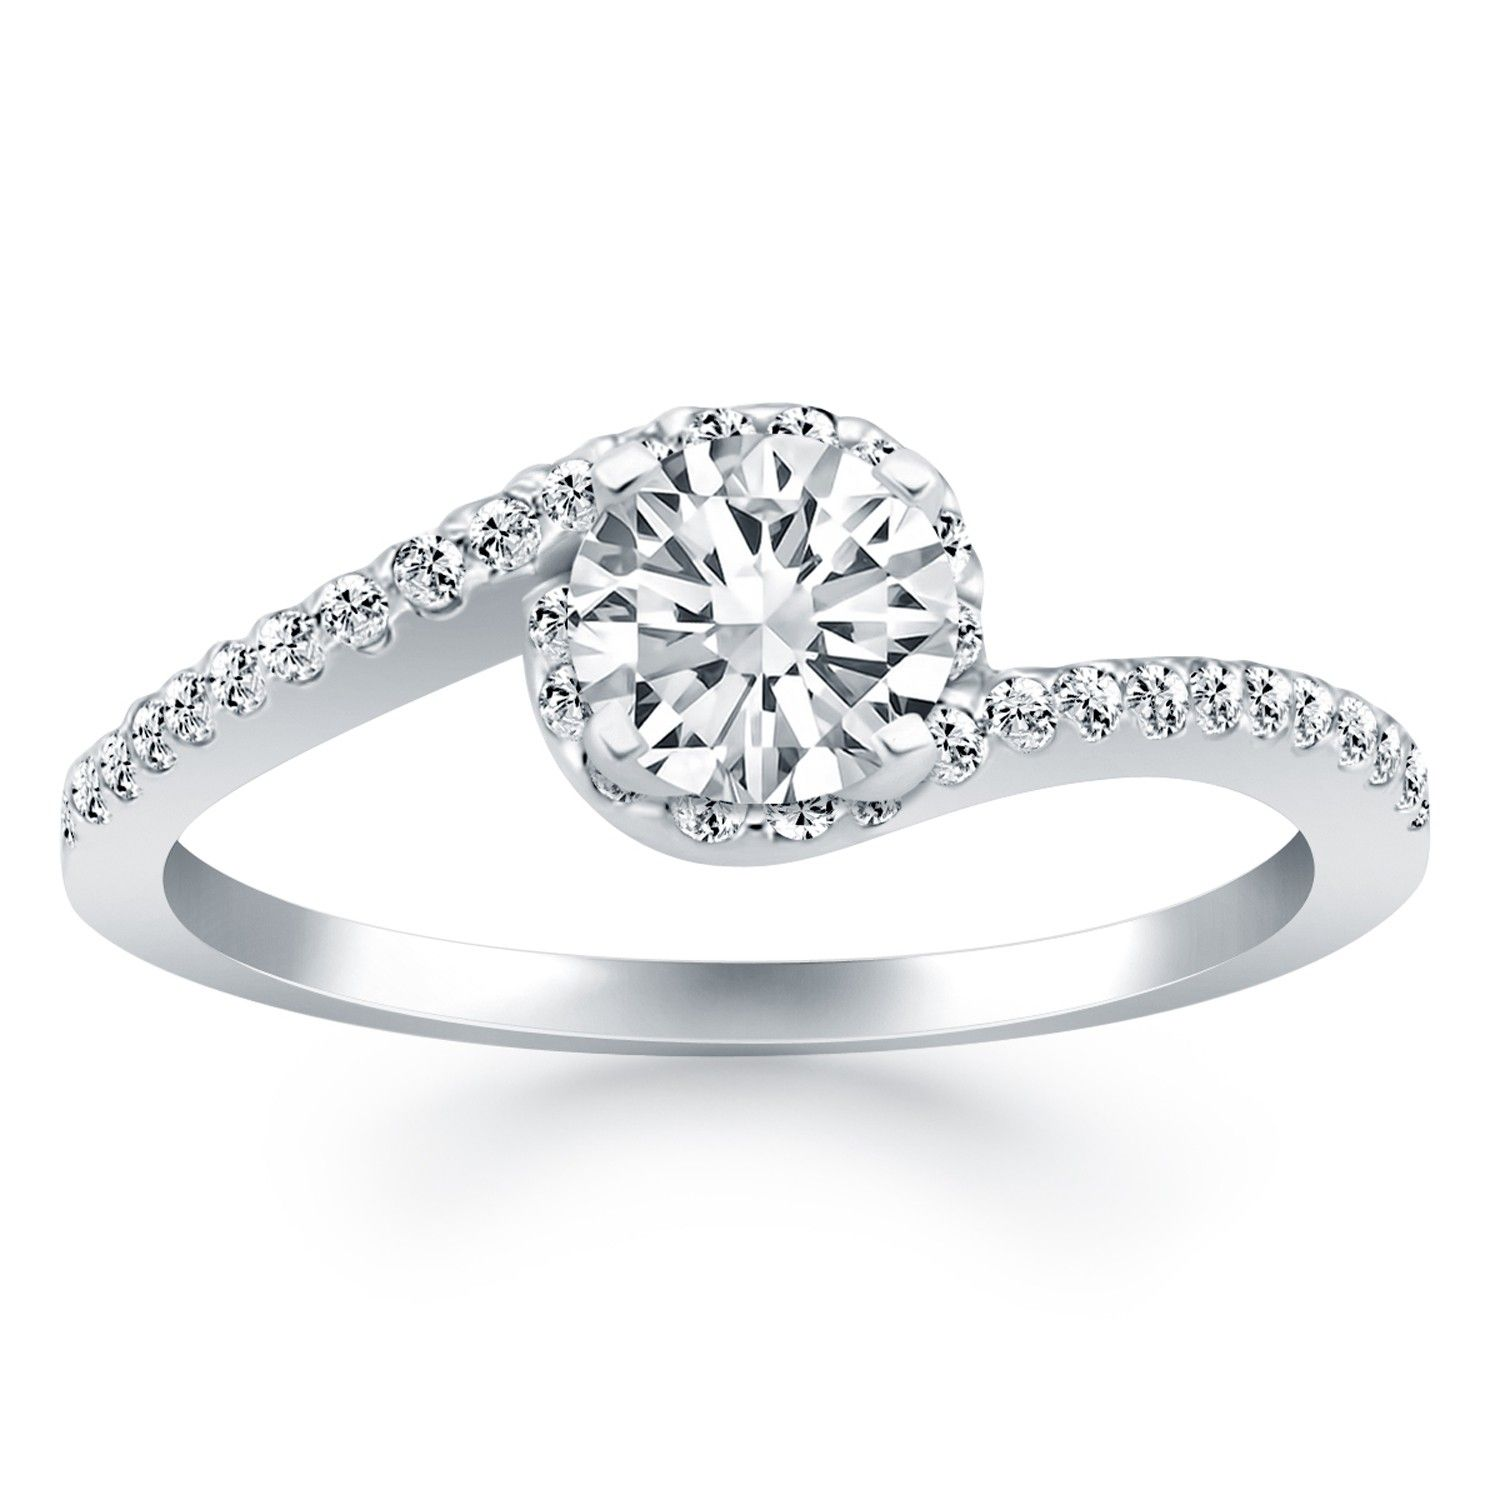 Love this, just want to wedding band to fit and look balanced. Wish there was a better pic!